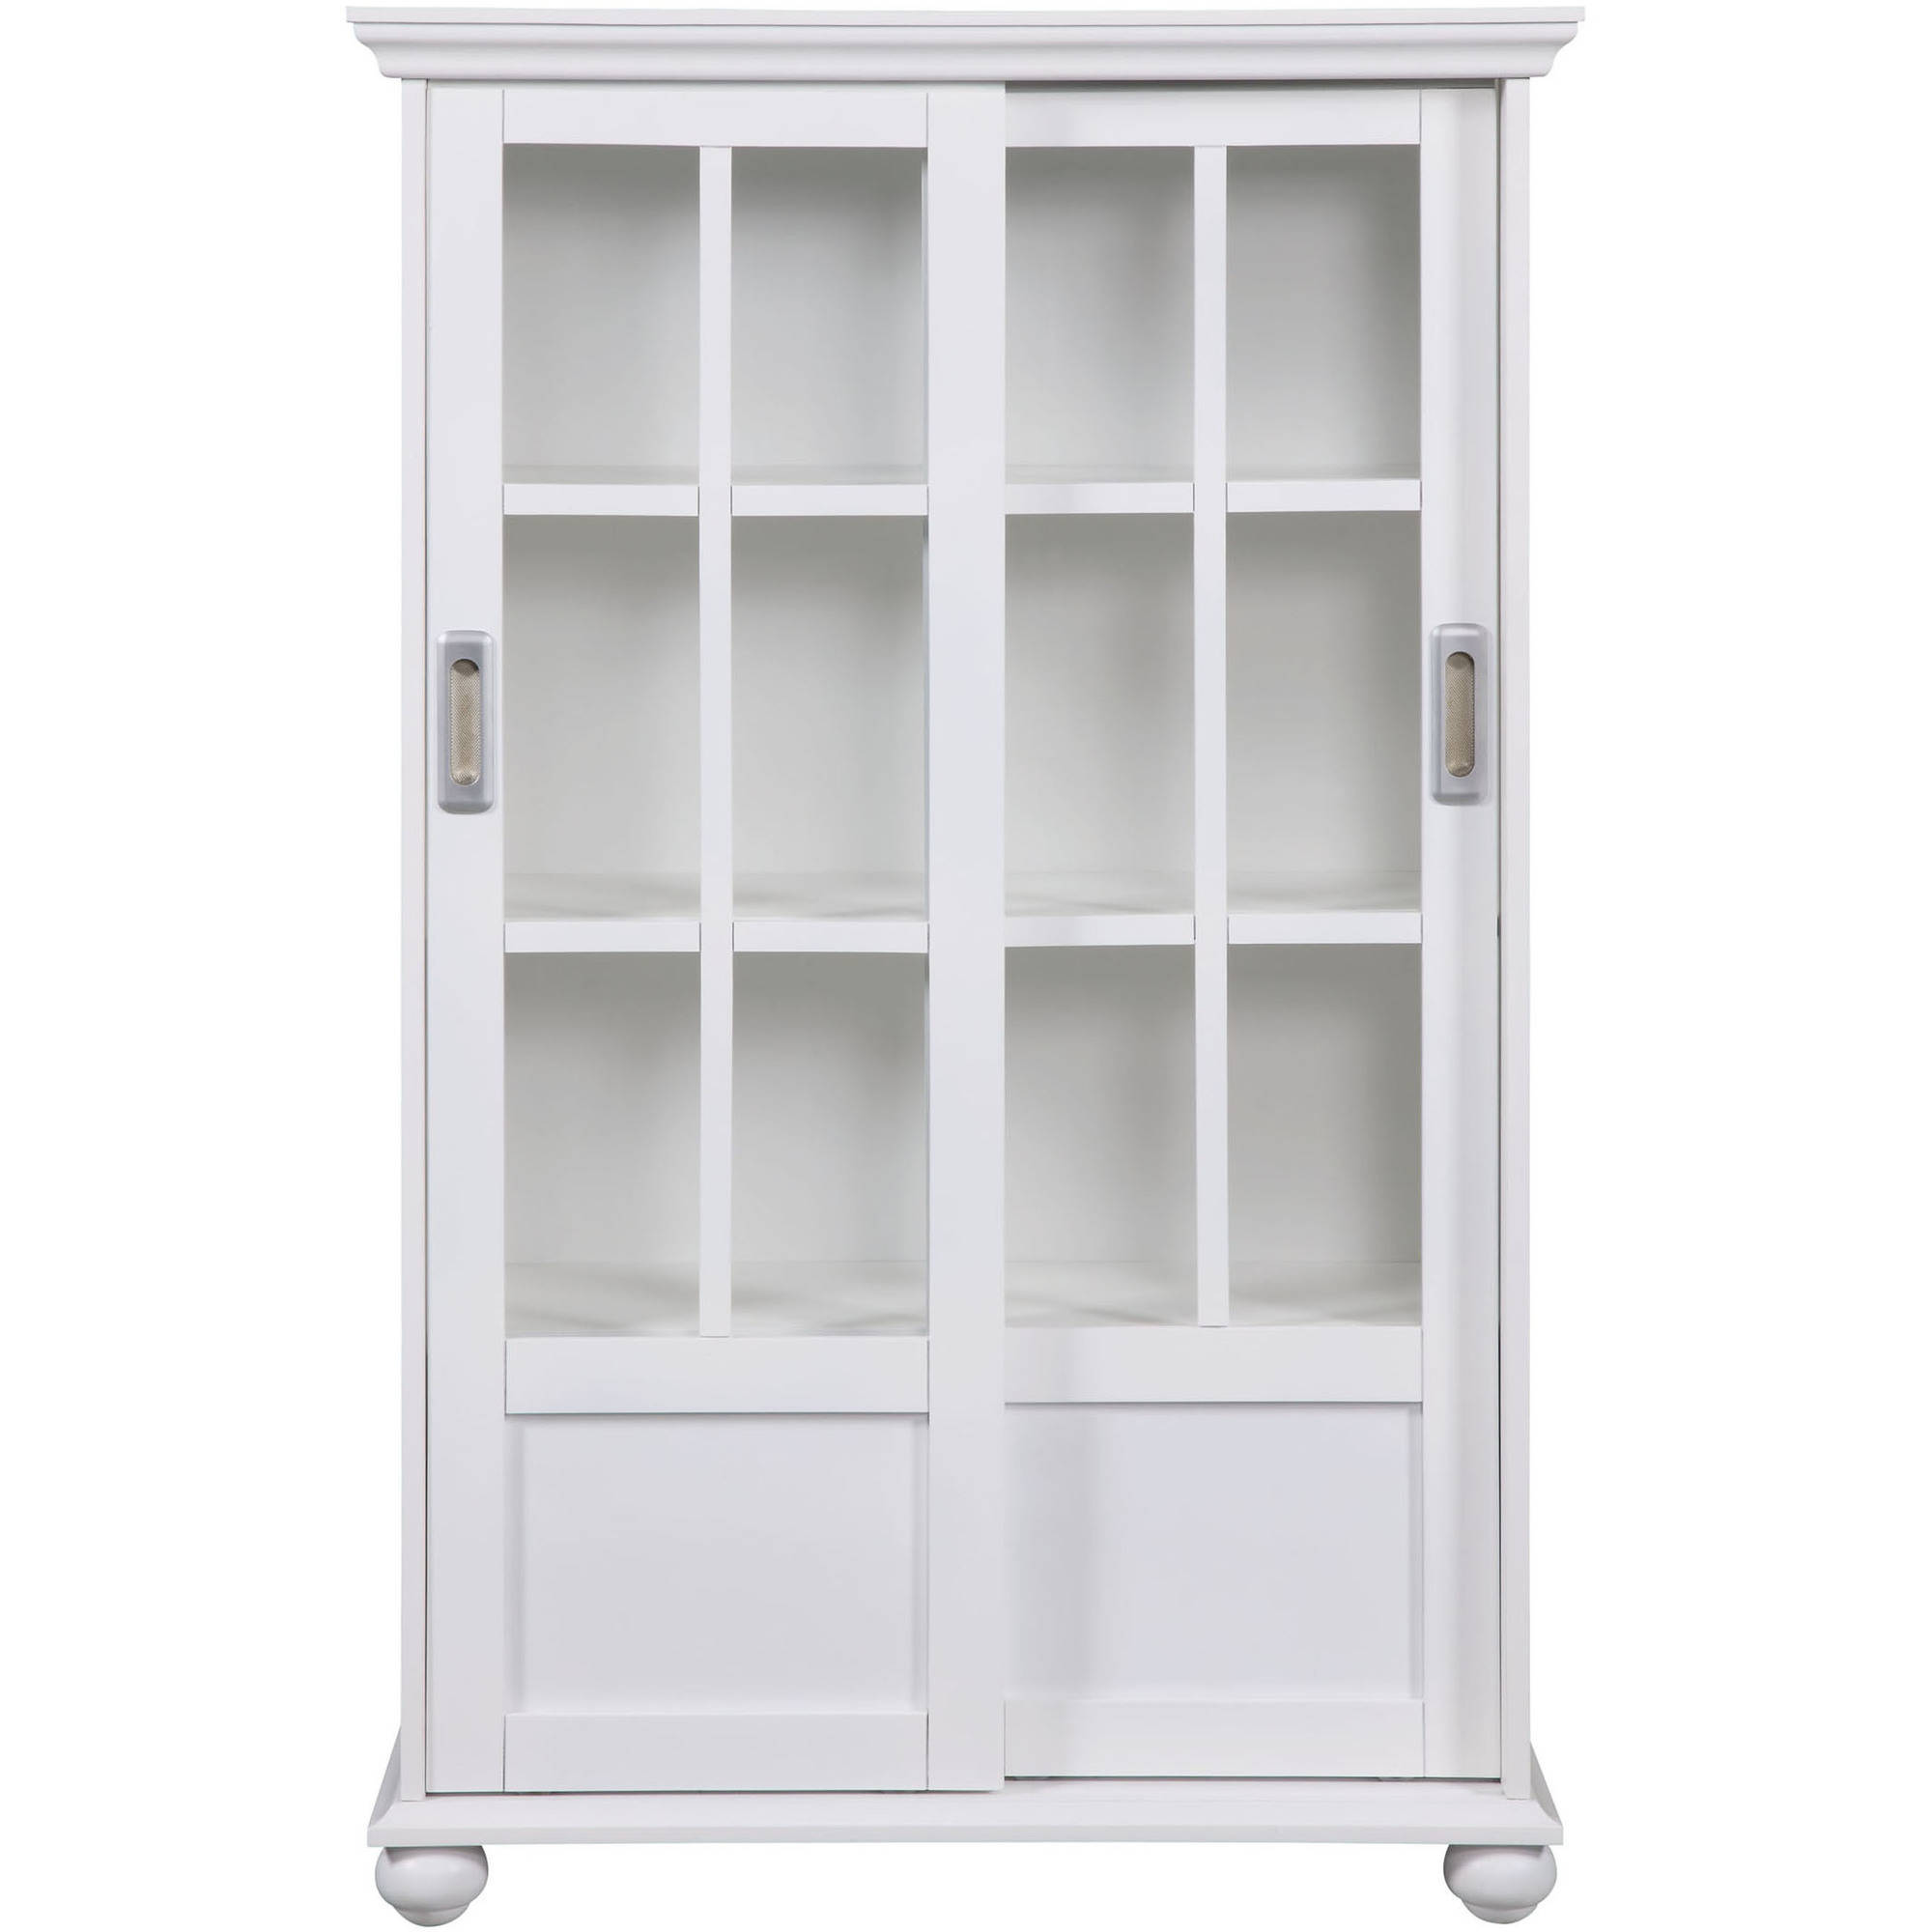 Altra aaron lane bookcase with sliding glass doors white altra aaron lane bookcase with sliding glass doors white walmart vtopaller Gallery